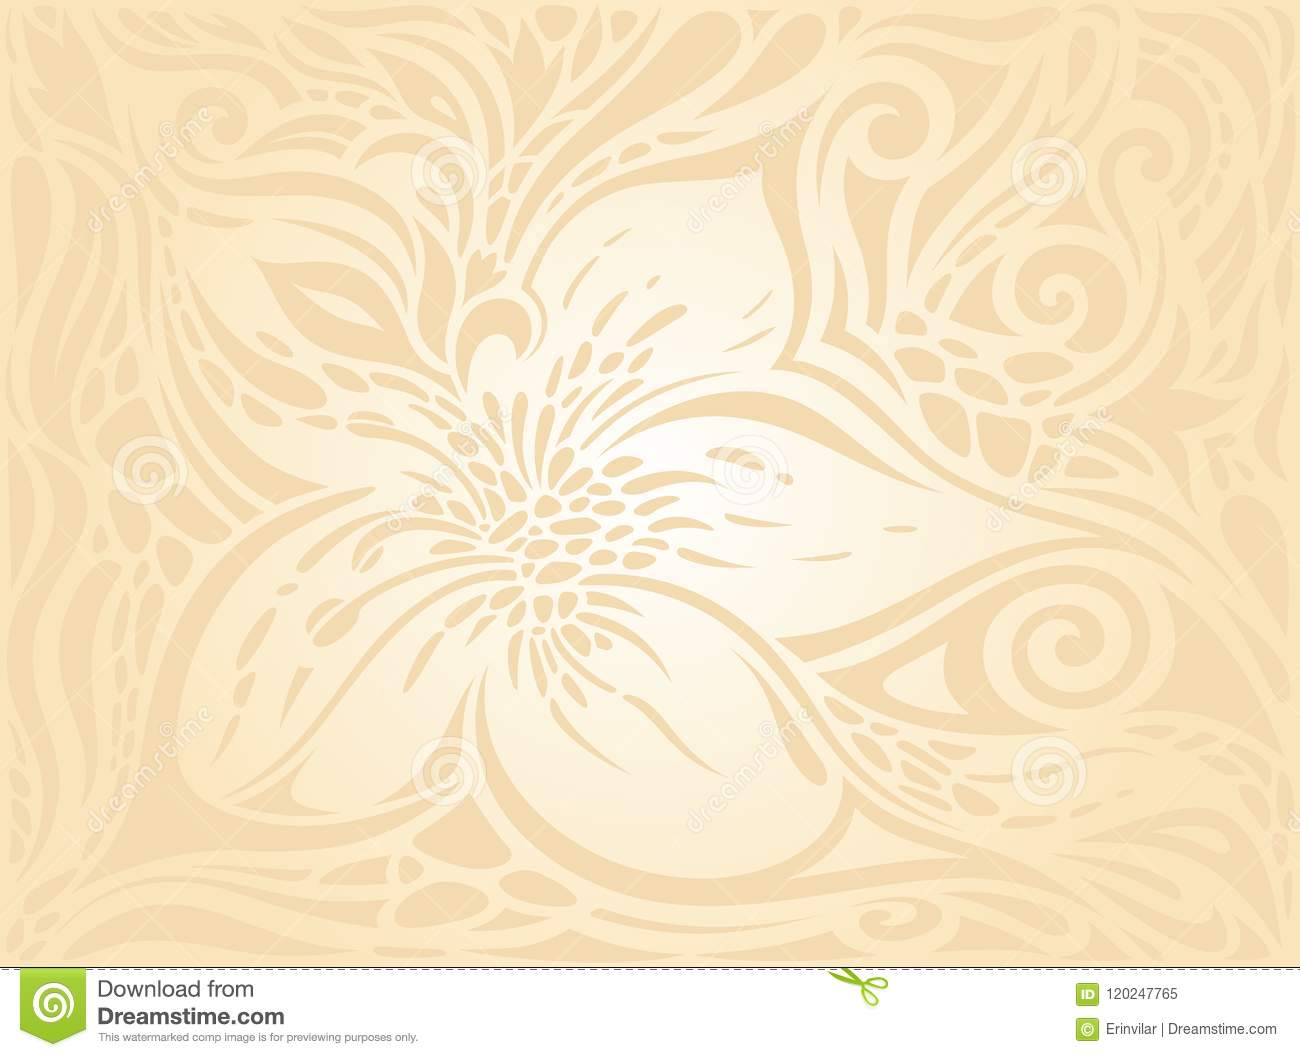 floral retro wedding pale peach wedding background design stock vector illustration of color flower 120247765 https www dreamstime com floral retro wedding pale peach wedding background design invitation trendy fashion vintage style floral retro wedding pale image120247765